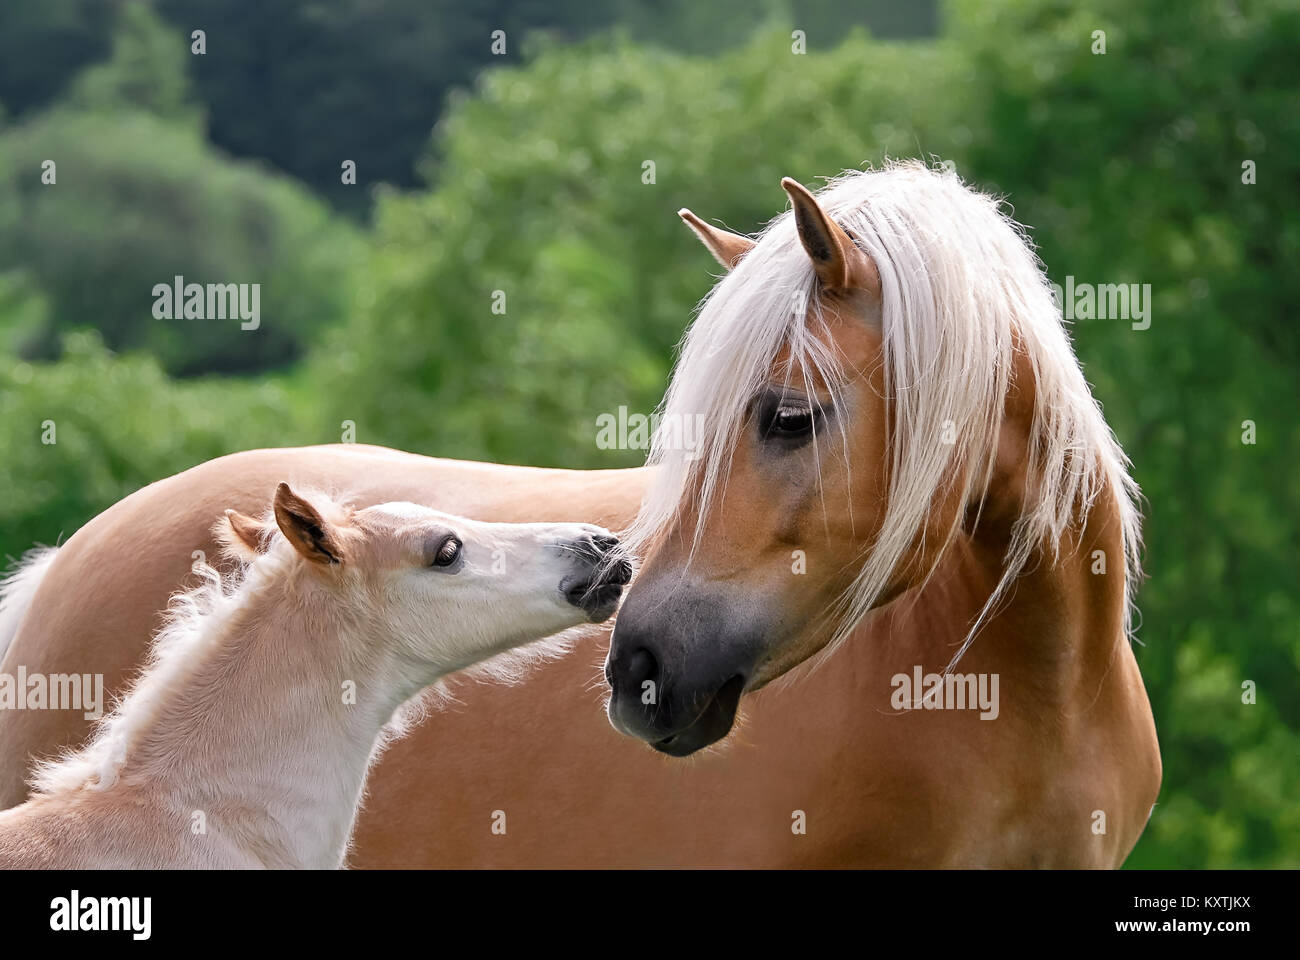 Haflinger horses, mare with foal side by side, cuddling, the cute baby avelignese pony confidently turns to its Stock Photo